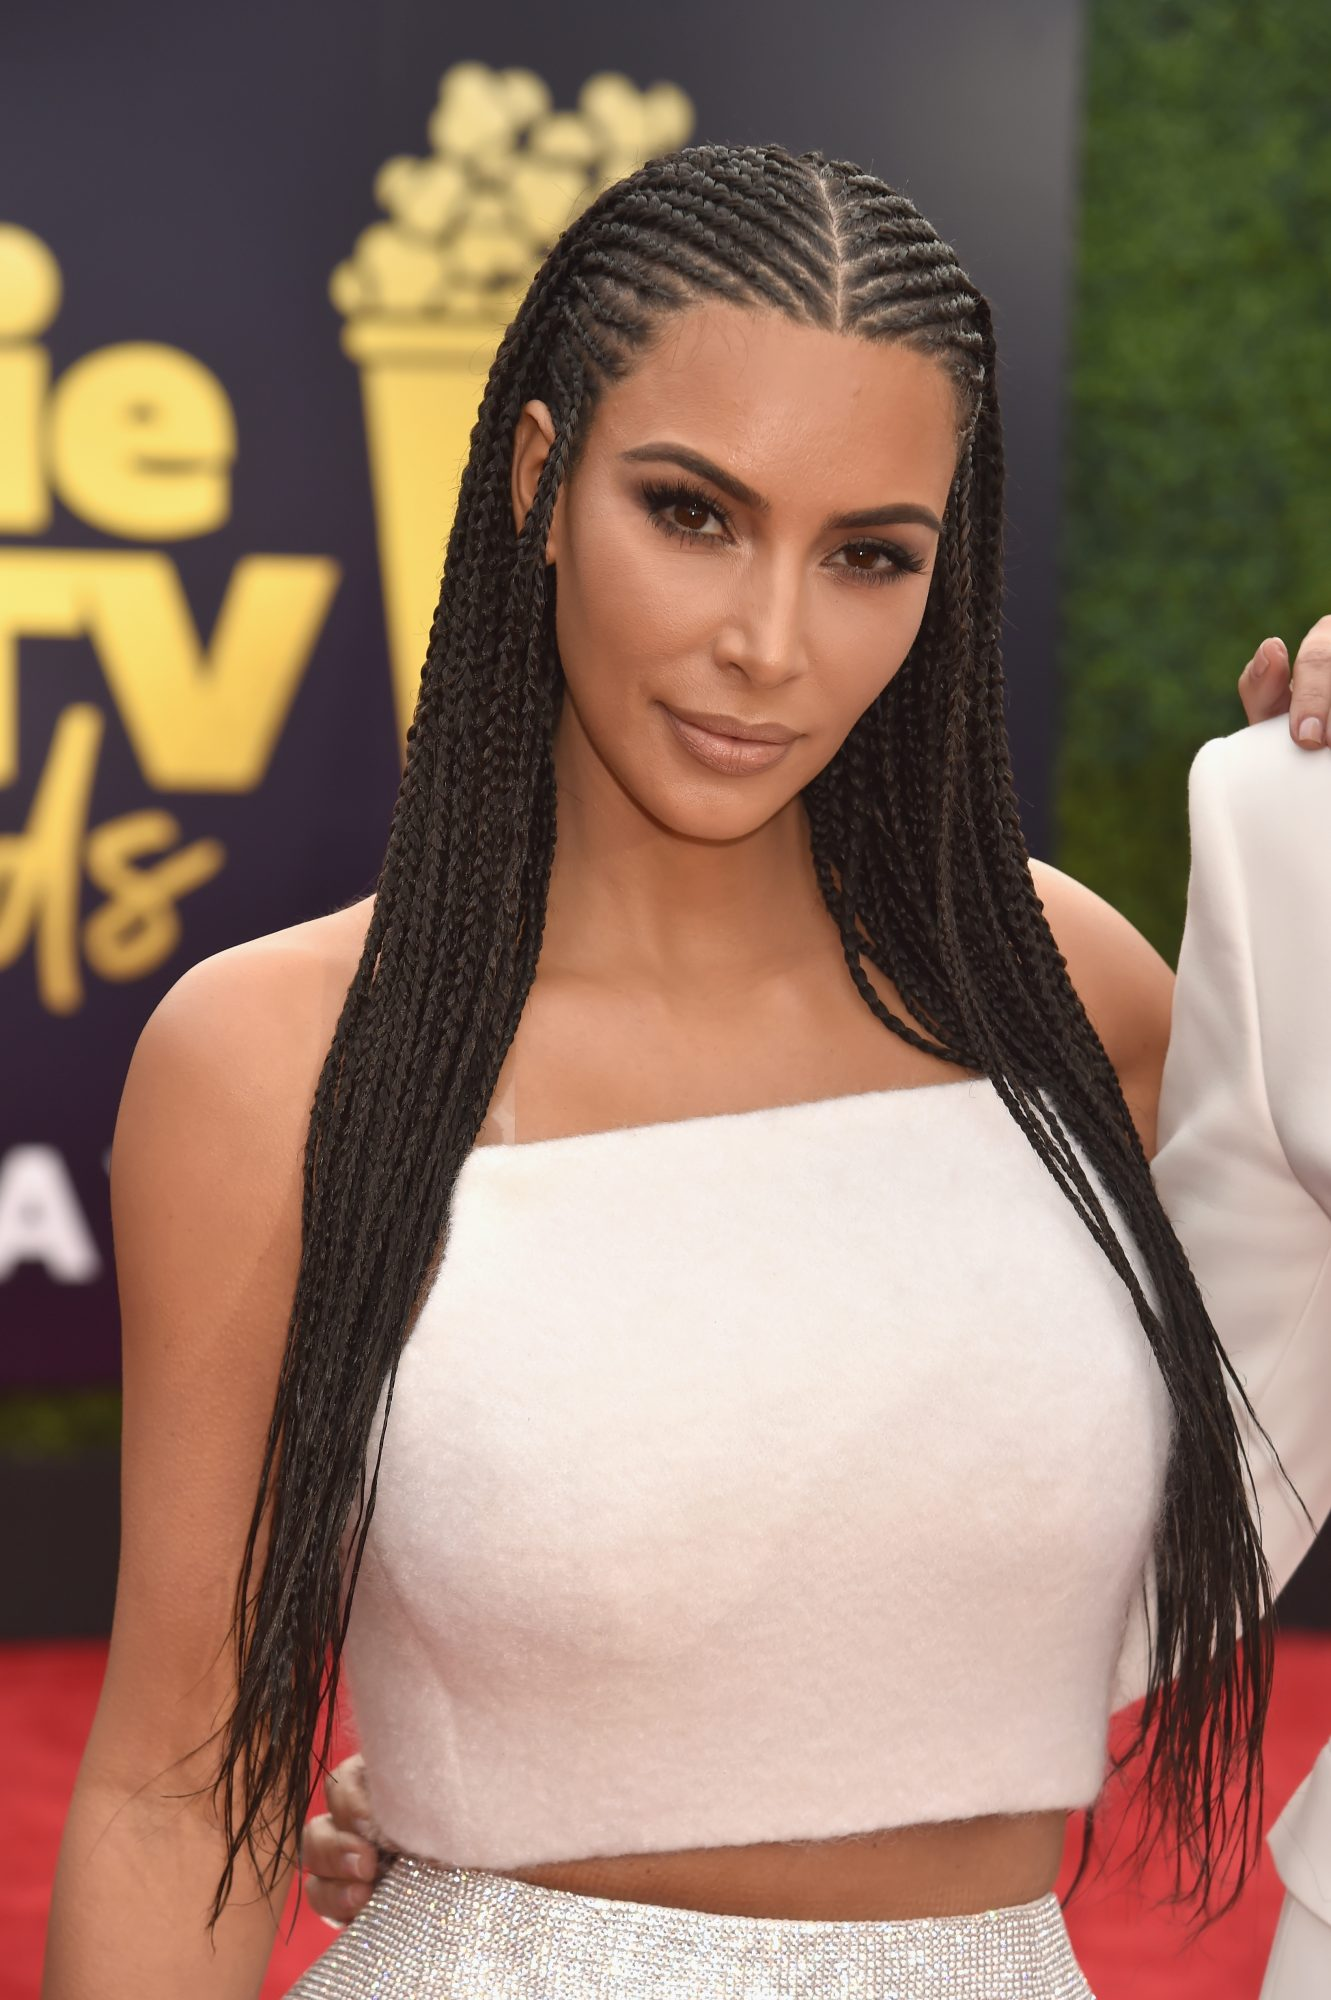 Kim Kardashian Wears Hair In Controversial Braids At Mtv